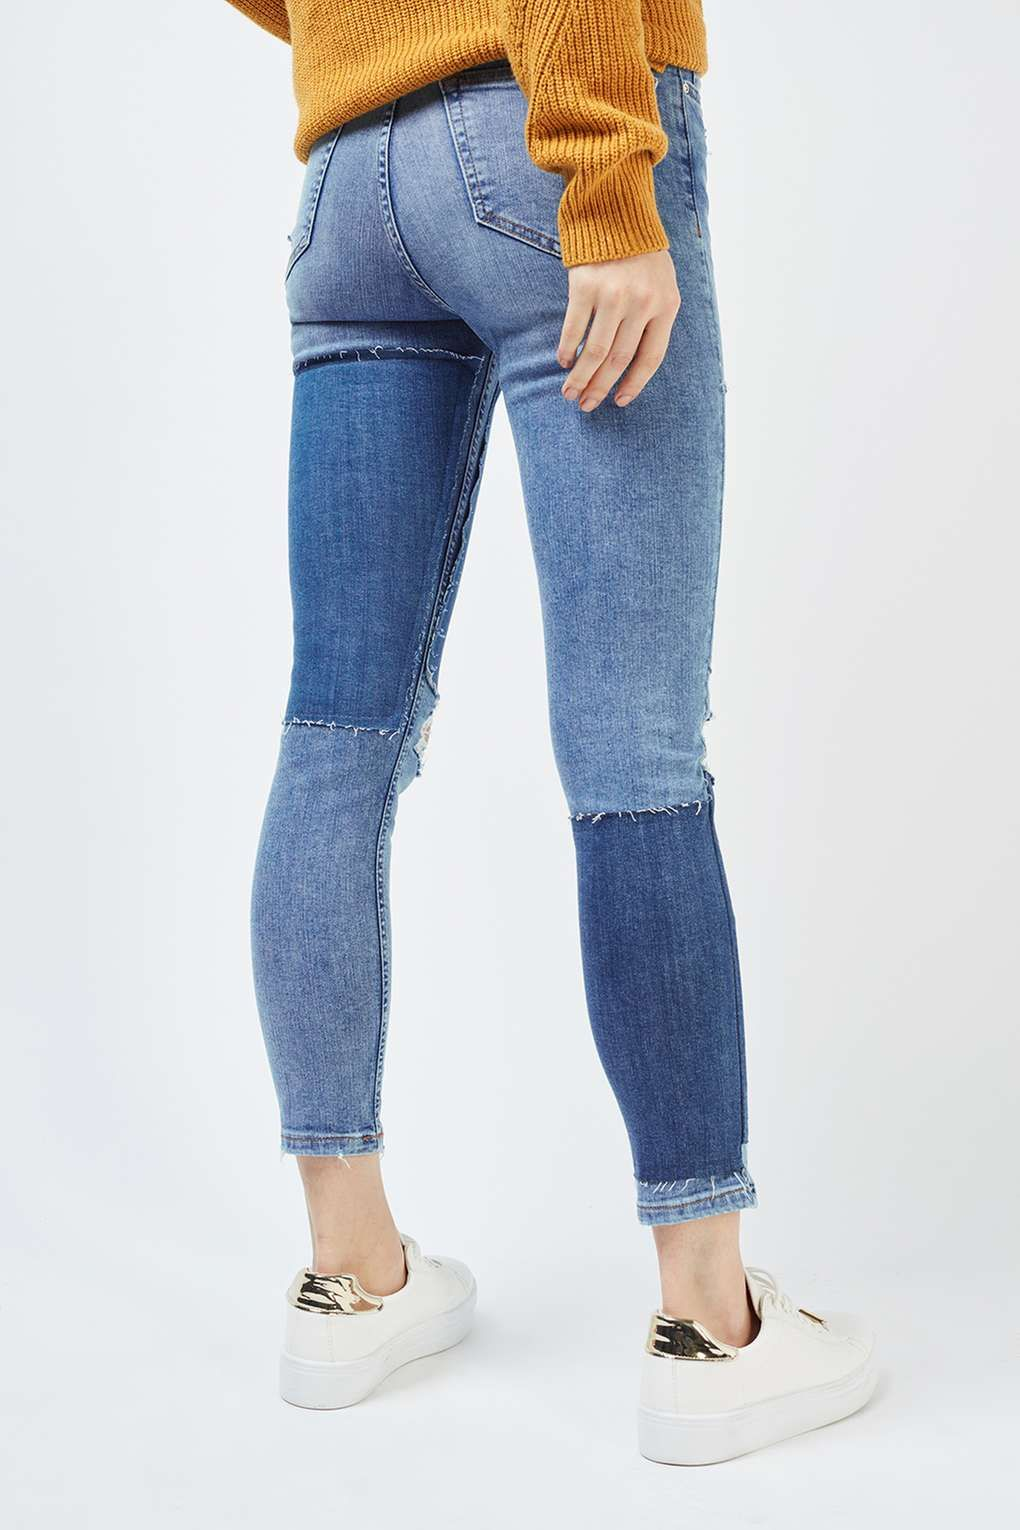 f1f15c2145 MOTO Panel Ripped Jamie Jeans | topshop | Jeans, Fashion, Clothes